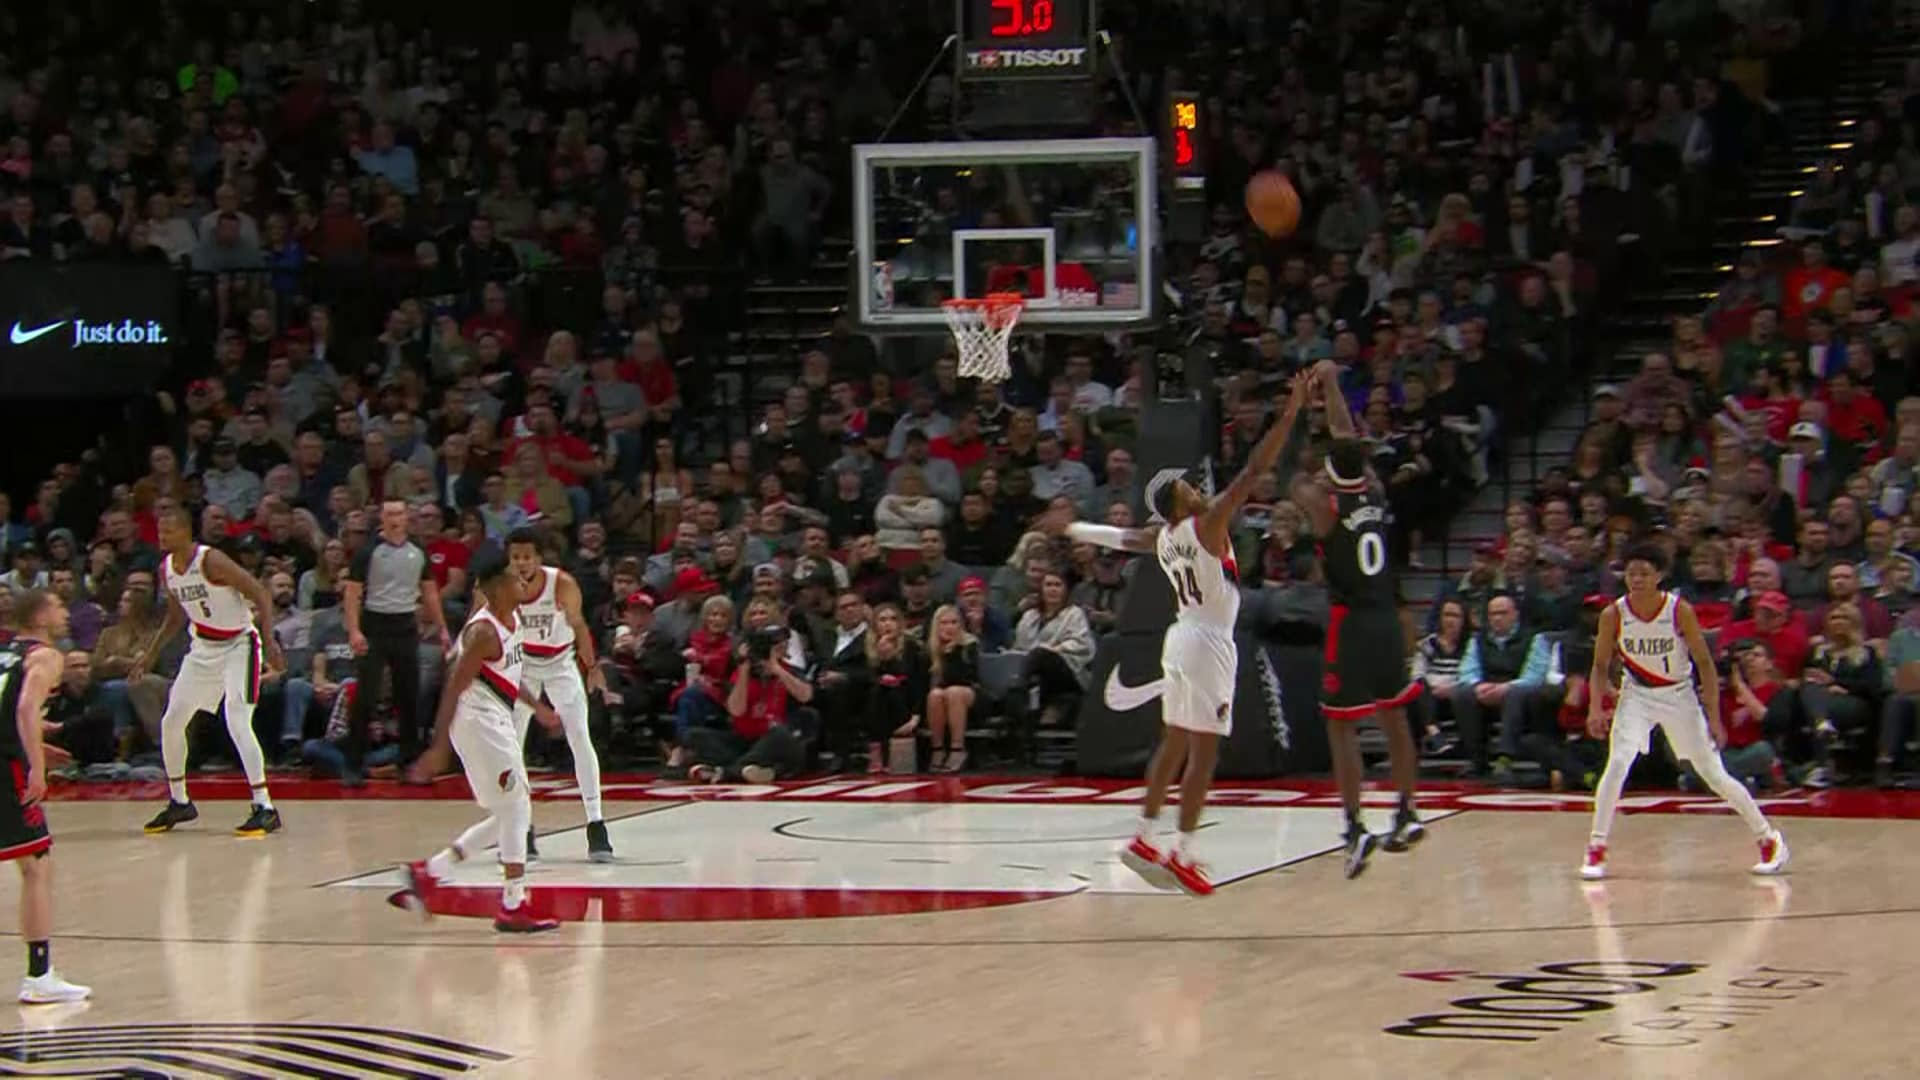 Raptors Highlights: Davis Three - November 13, 2019